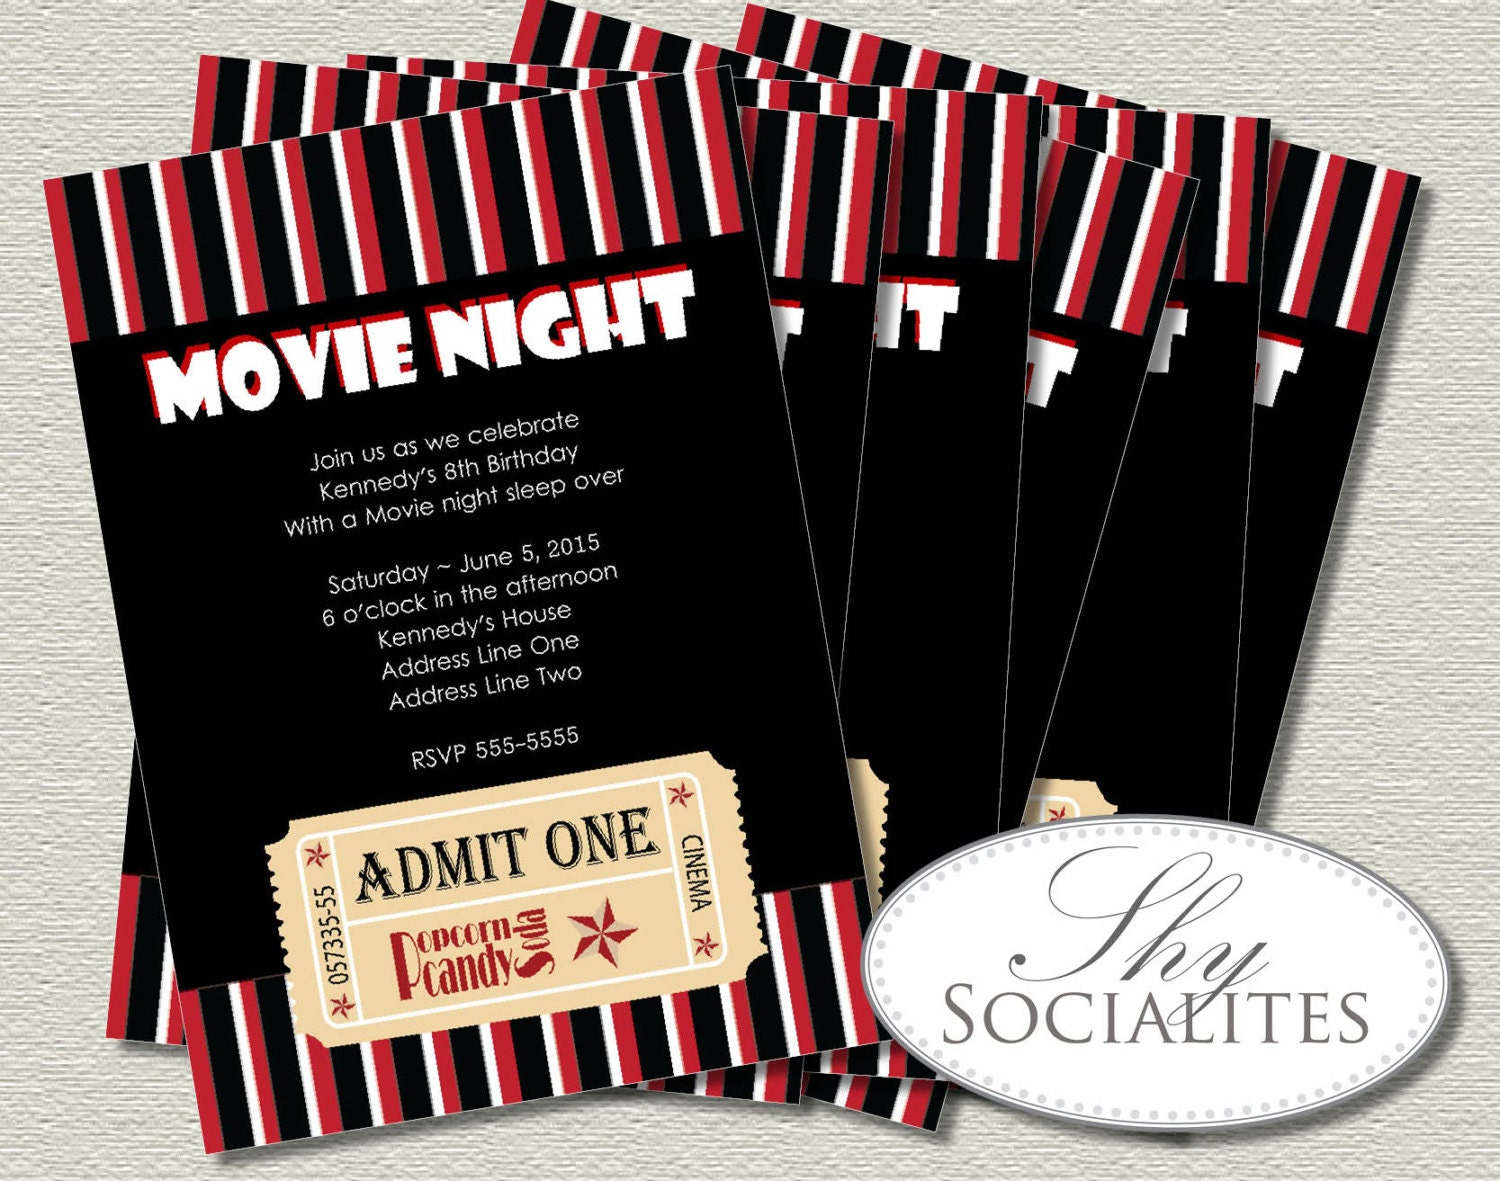 Movie ticket invitation ticket invitation movie night zoom filmwisefo